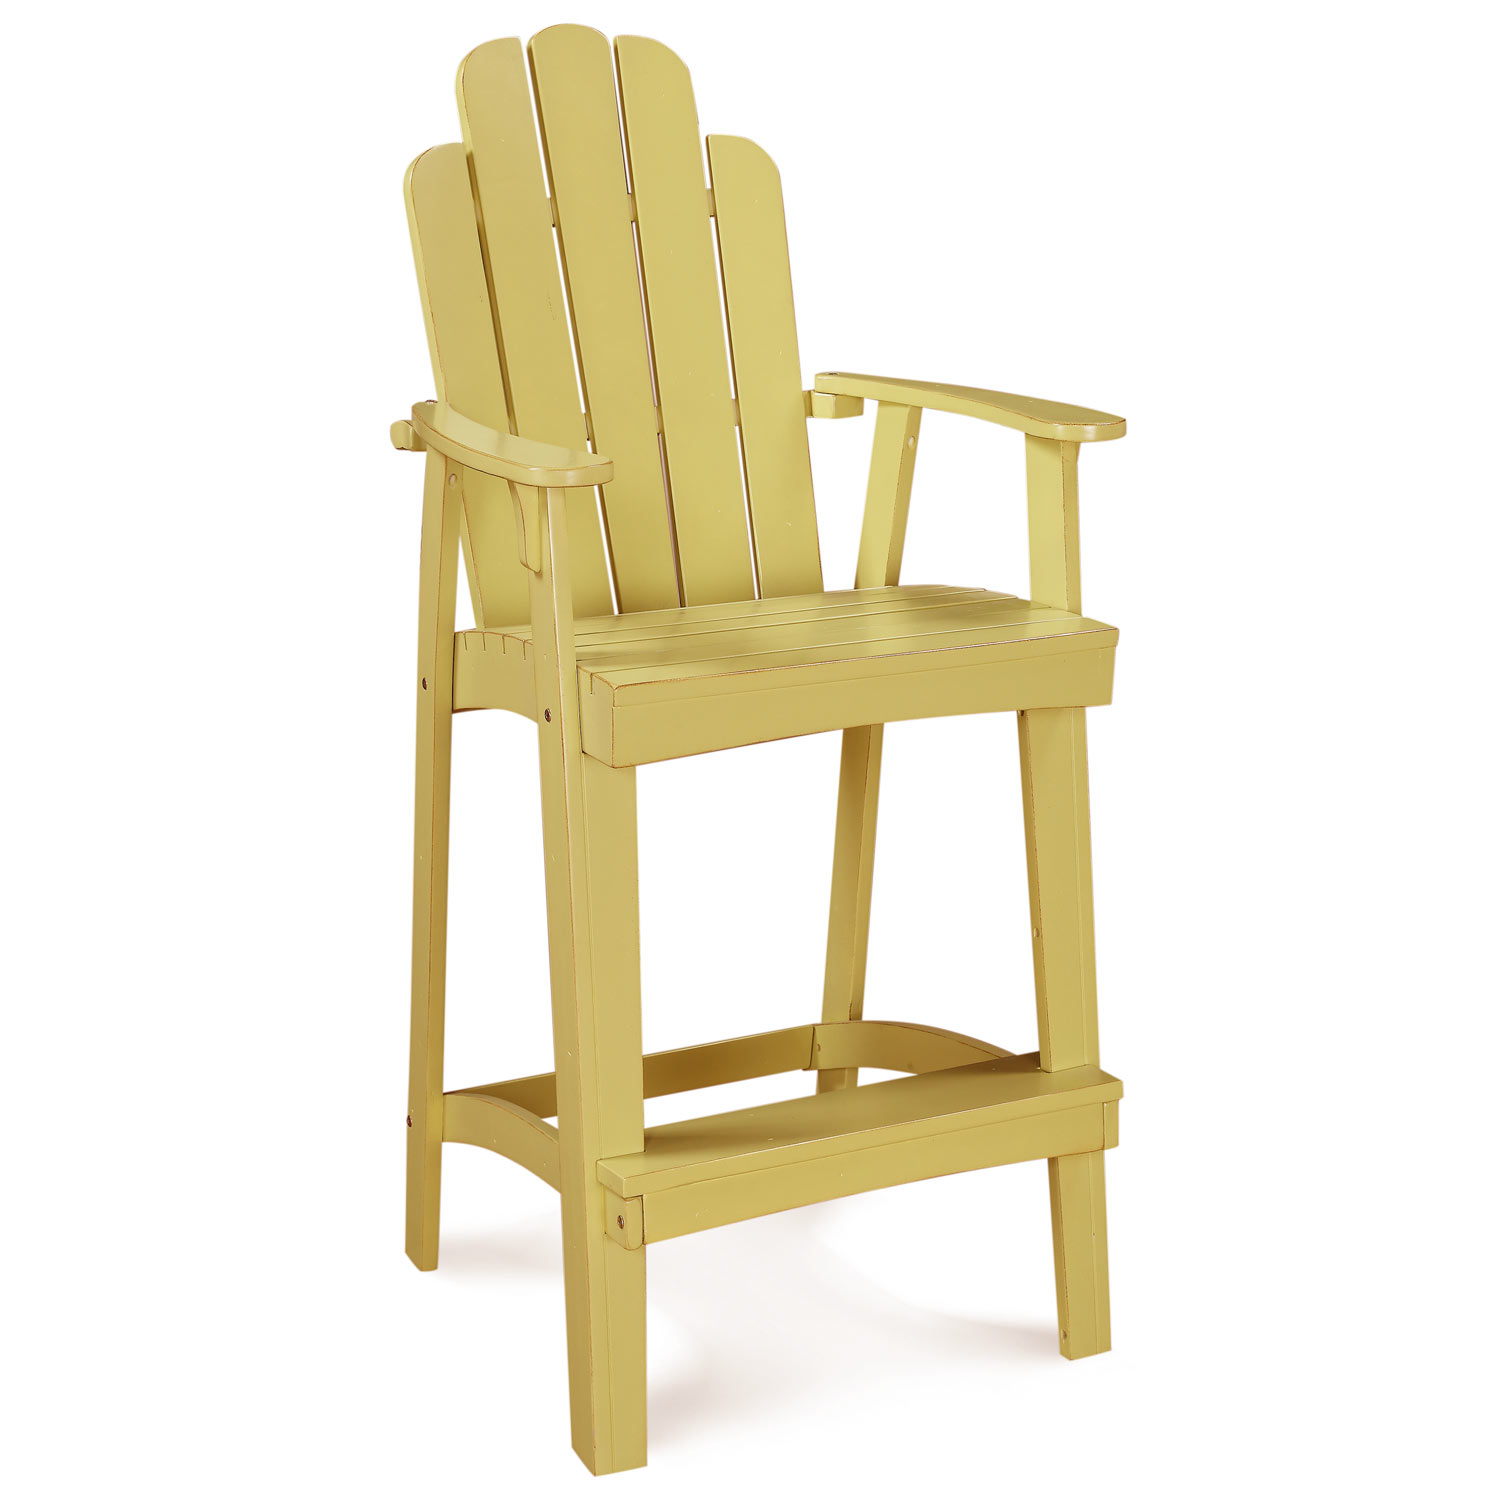 30 patio adirondack bar stool rustic scalloped back lemonade yellow dcg stores Rustic outdoor bar stools